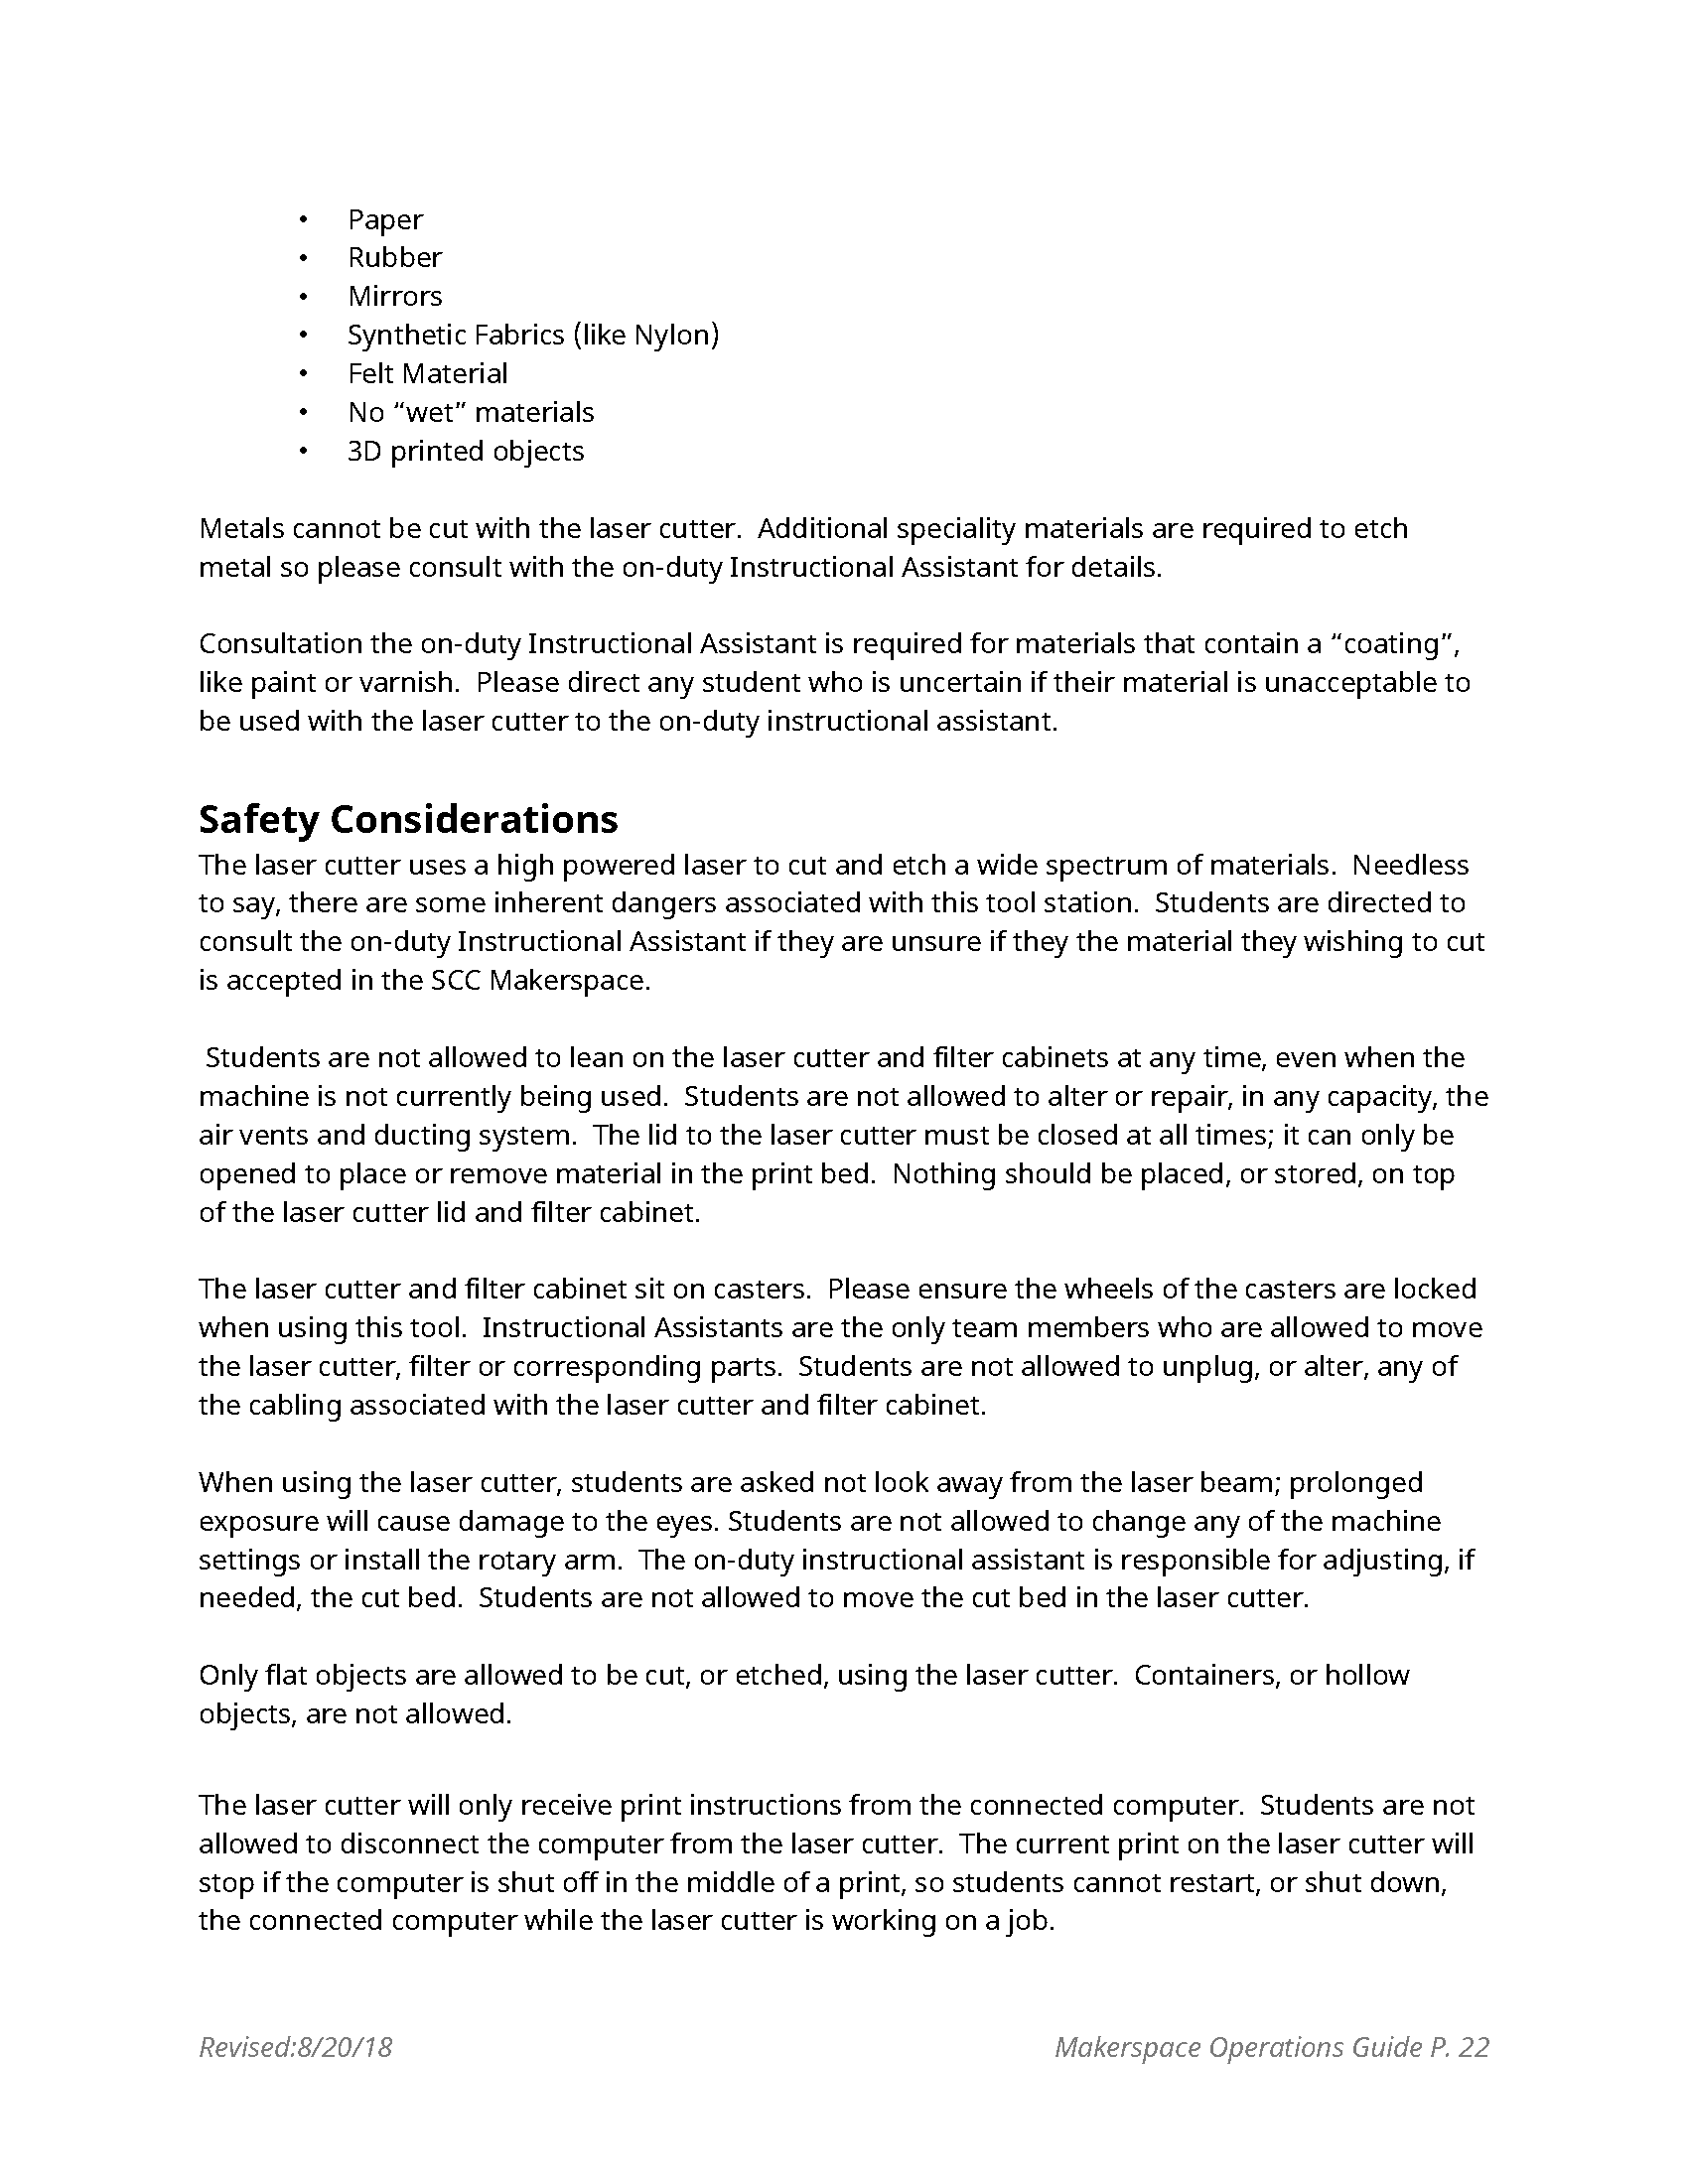 ms_ops_manual_8-20_Page_22.png